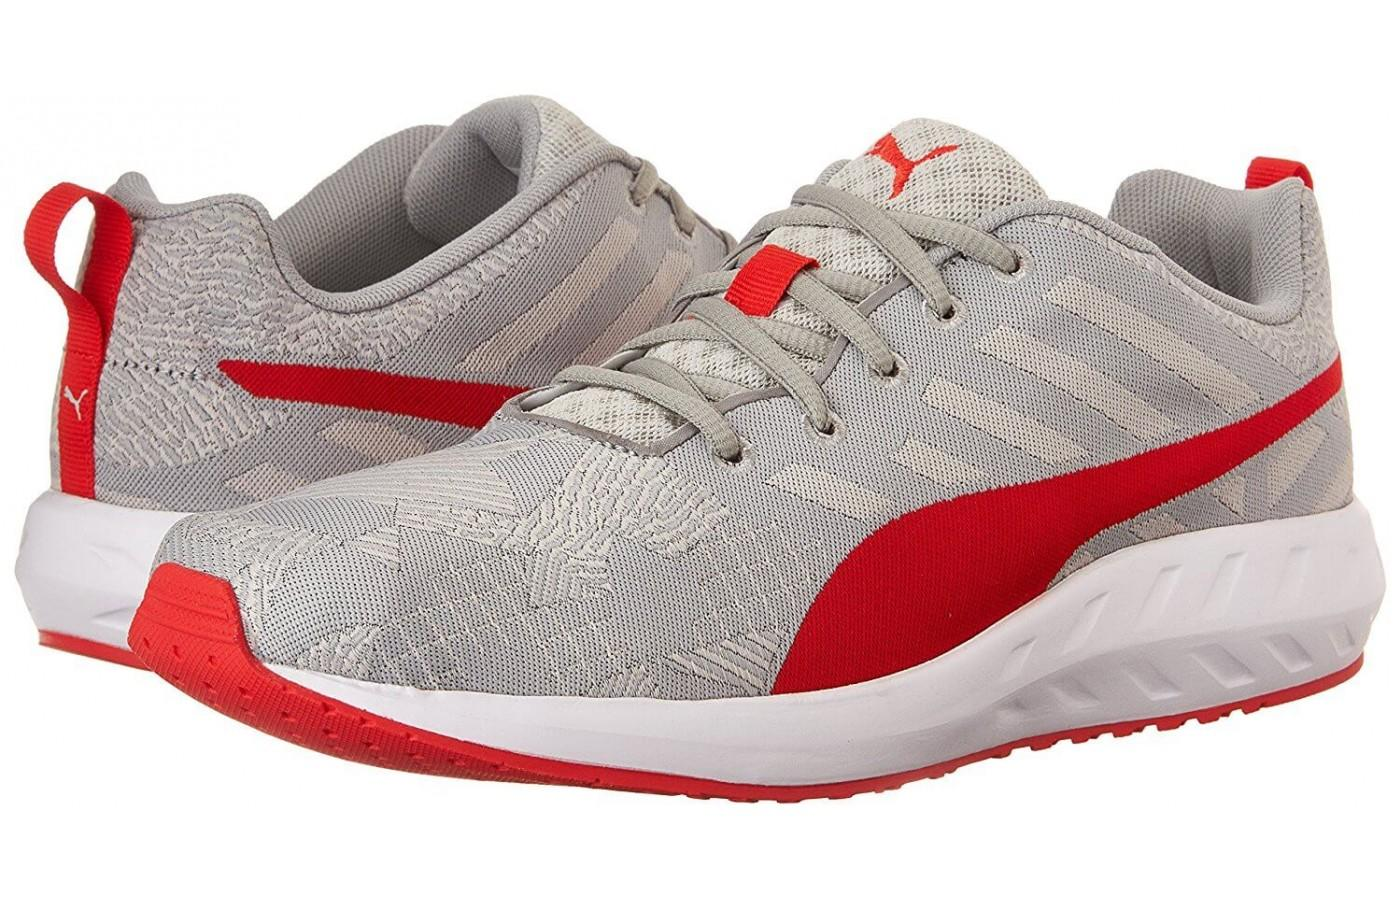 The Puma Flare features Spark cushioning